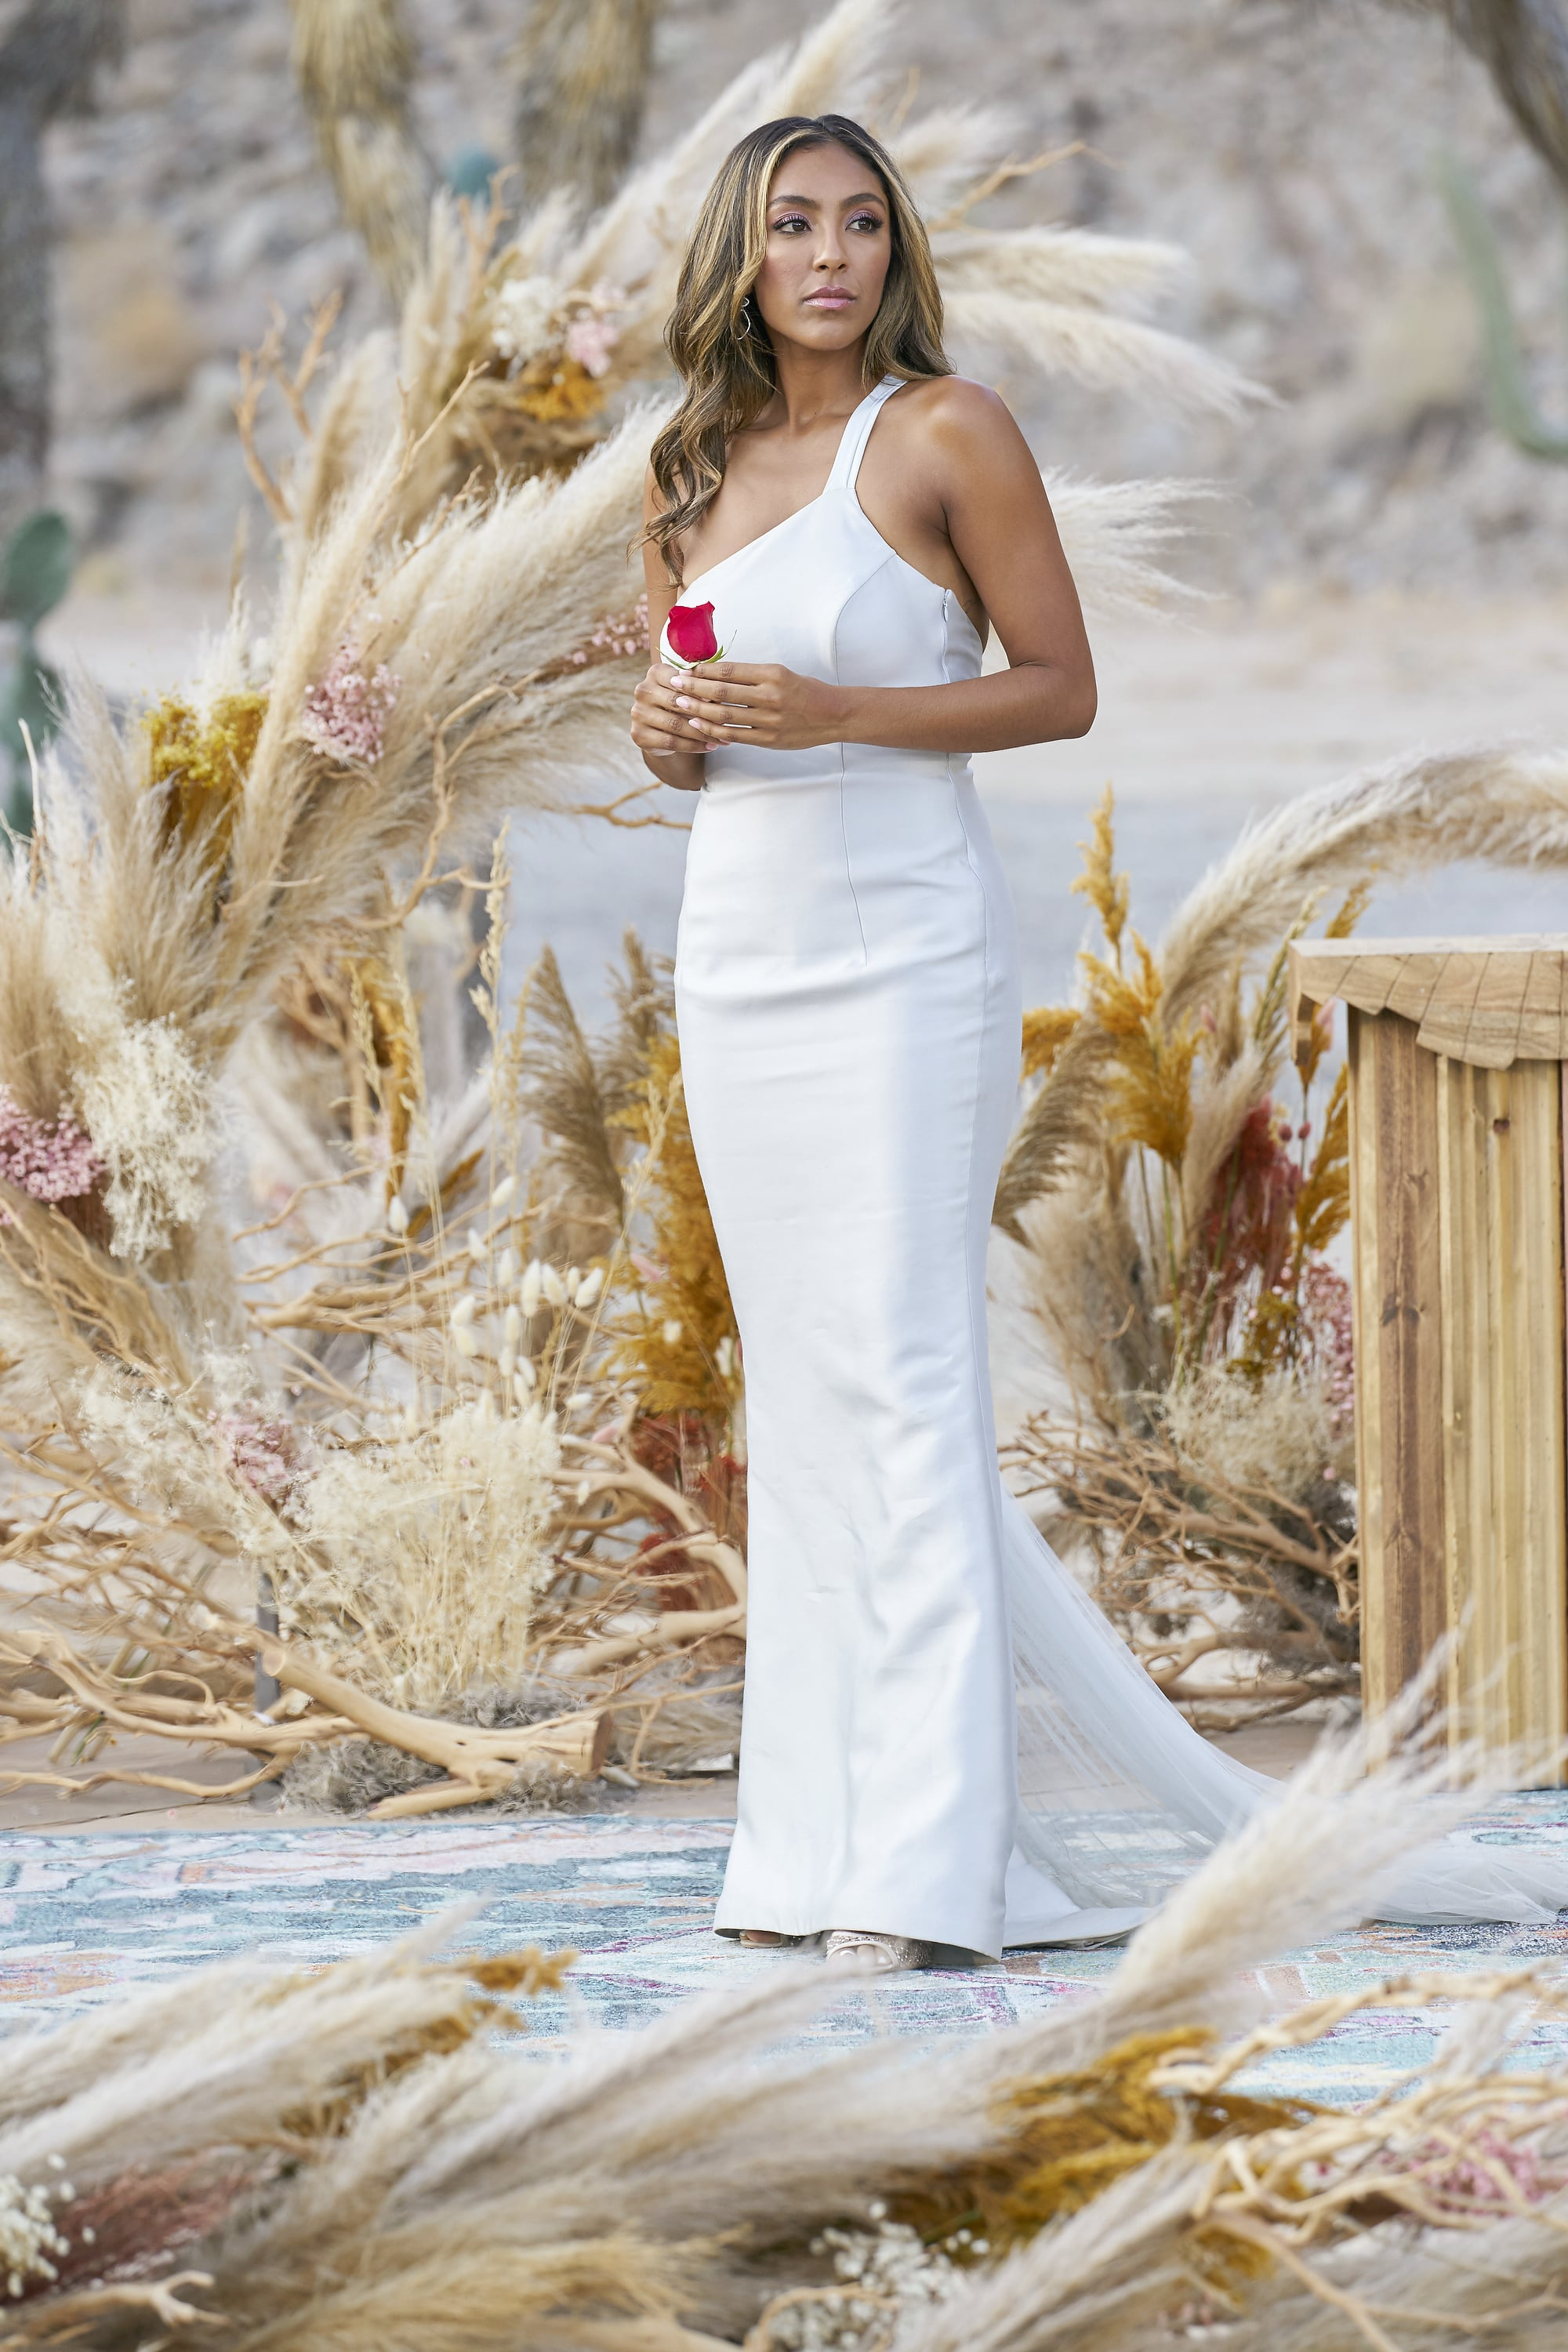 THE BACHELORETTE - 1613  Season Finale  After a shocking rose ceremony, Tayshia is excited to introduce the remaining bachelors to her family. Will the men win over her family? Her father voices concerns that she might make a big mistake. When proposal day arrives, Tayshia is so overcome with emotion that not even Chris Harrison can read her tears. Will Tayshia bravely step into the future she has been dreaming of or will she be too scared of repeating her past? Find out on The Bachelorette, TUESDAY, DEC. 22 (8:00-10:01 p.m. EST), on ABC.